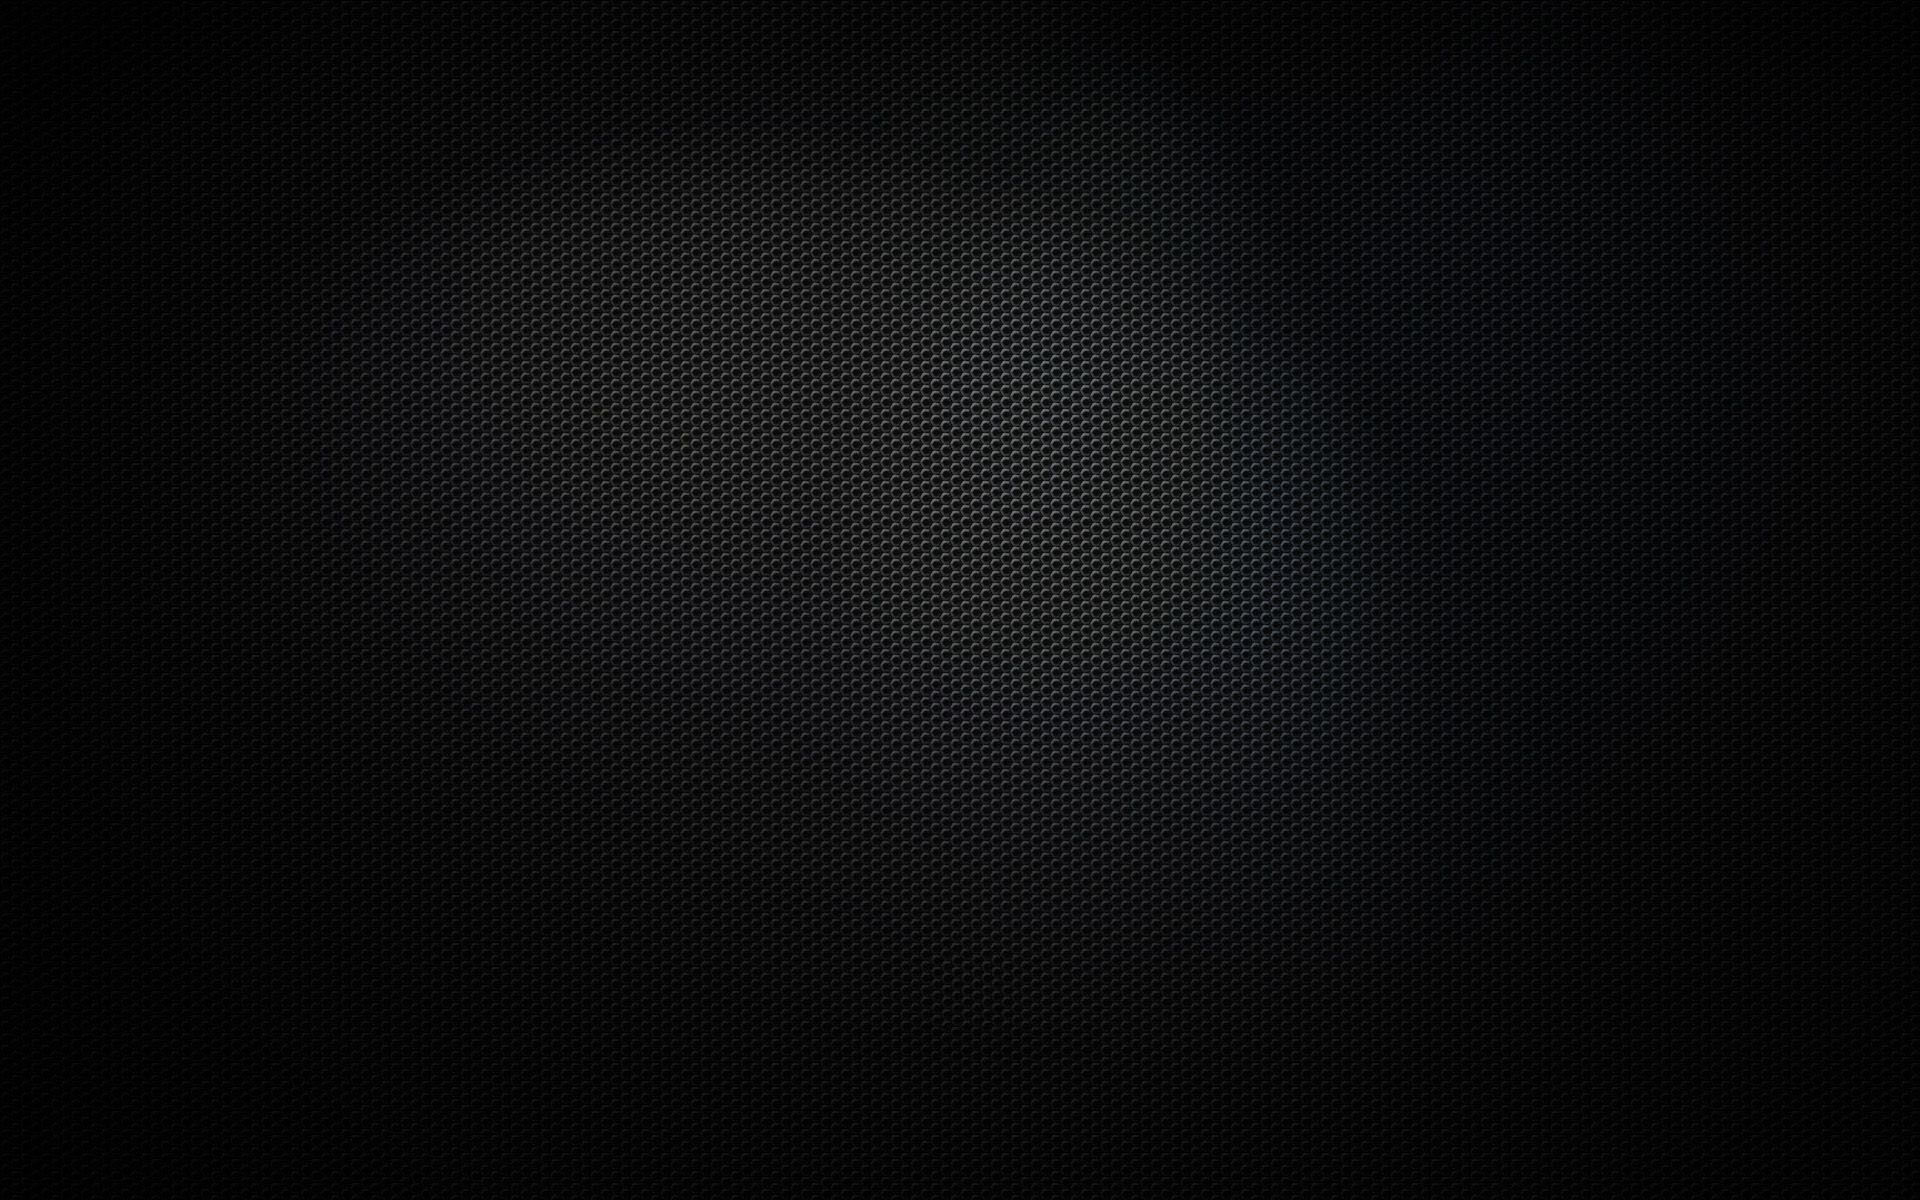 71 abstract dark wallpaper Pictures